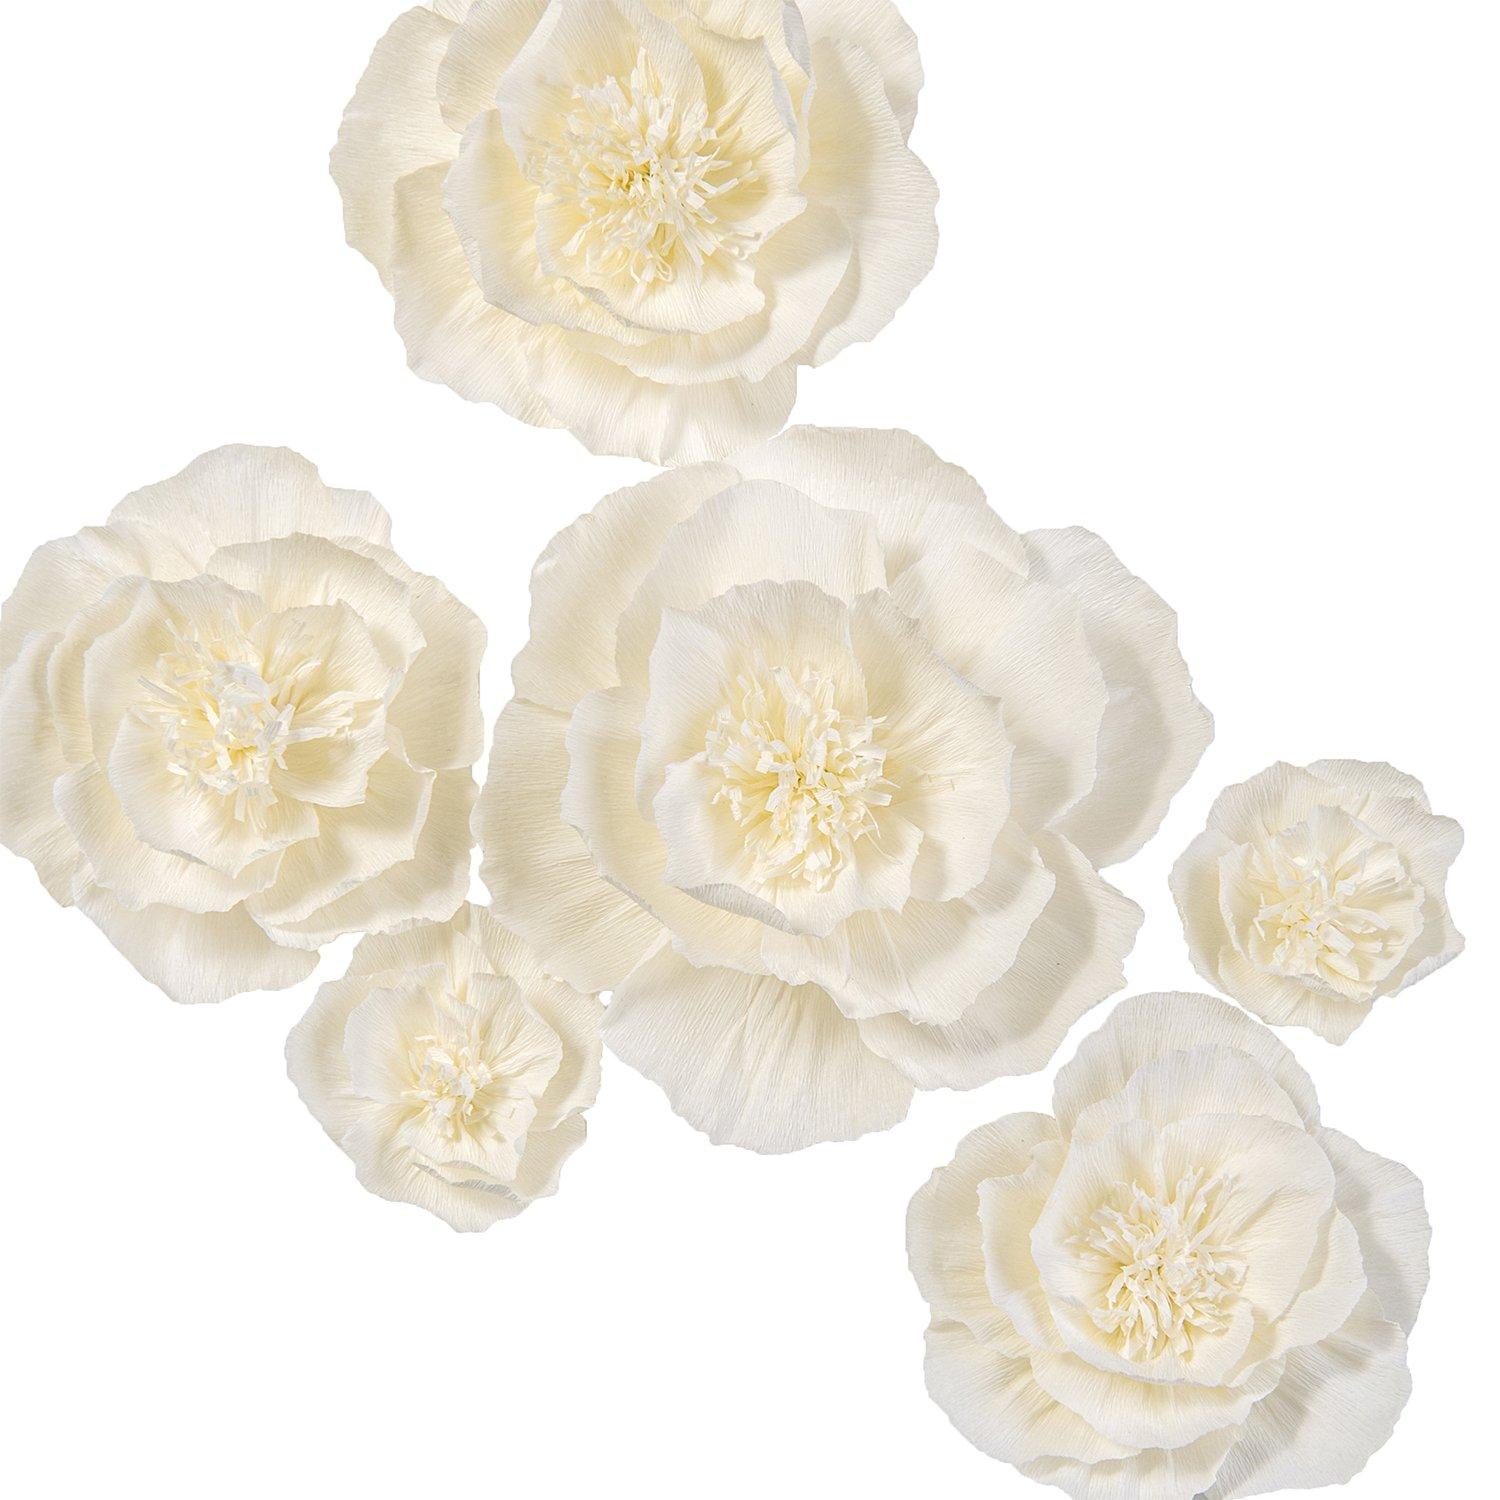 Lovely Lings Moment Paper Flower Decorations 6 X Off White Paper